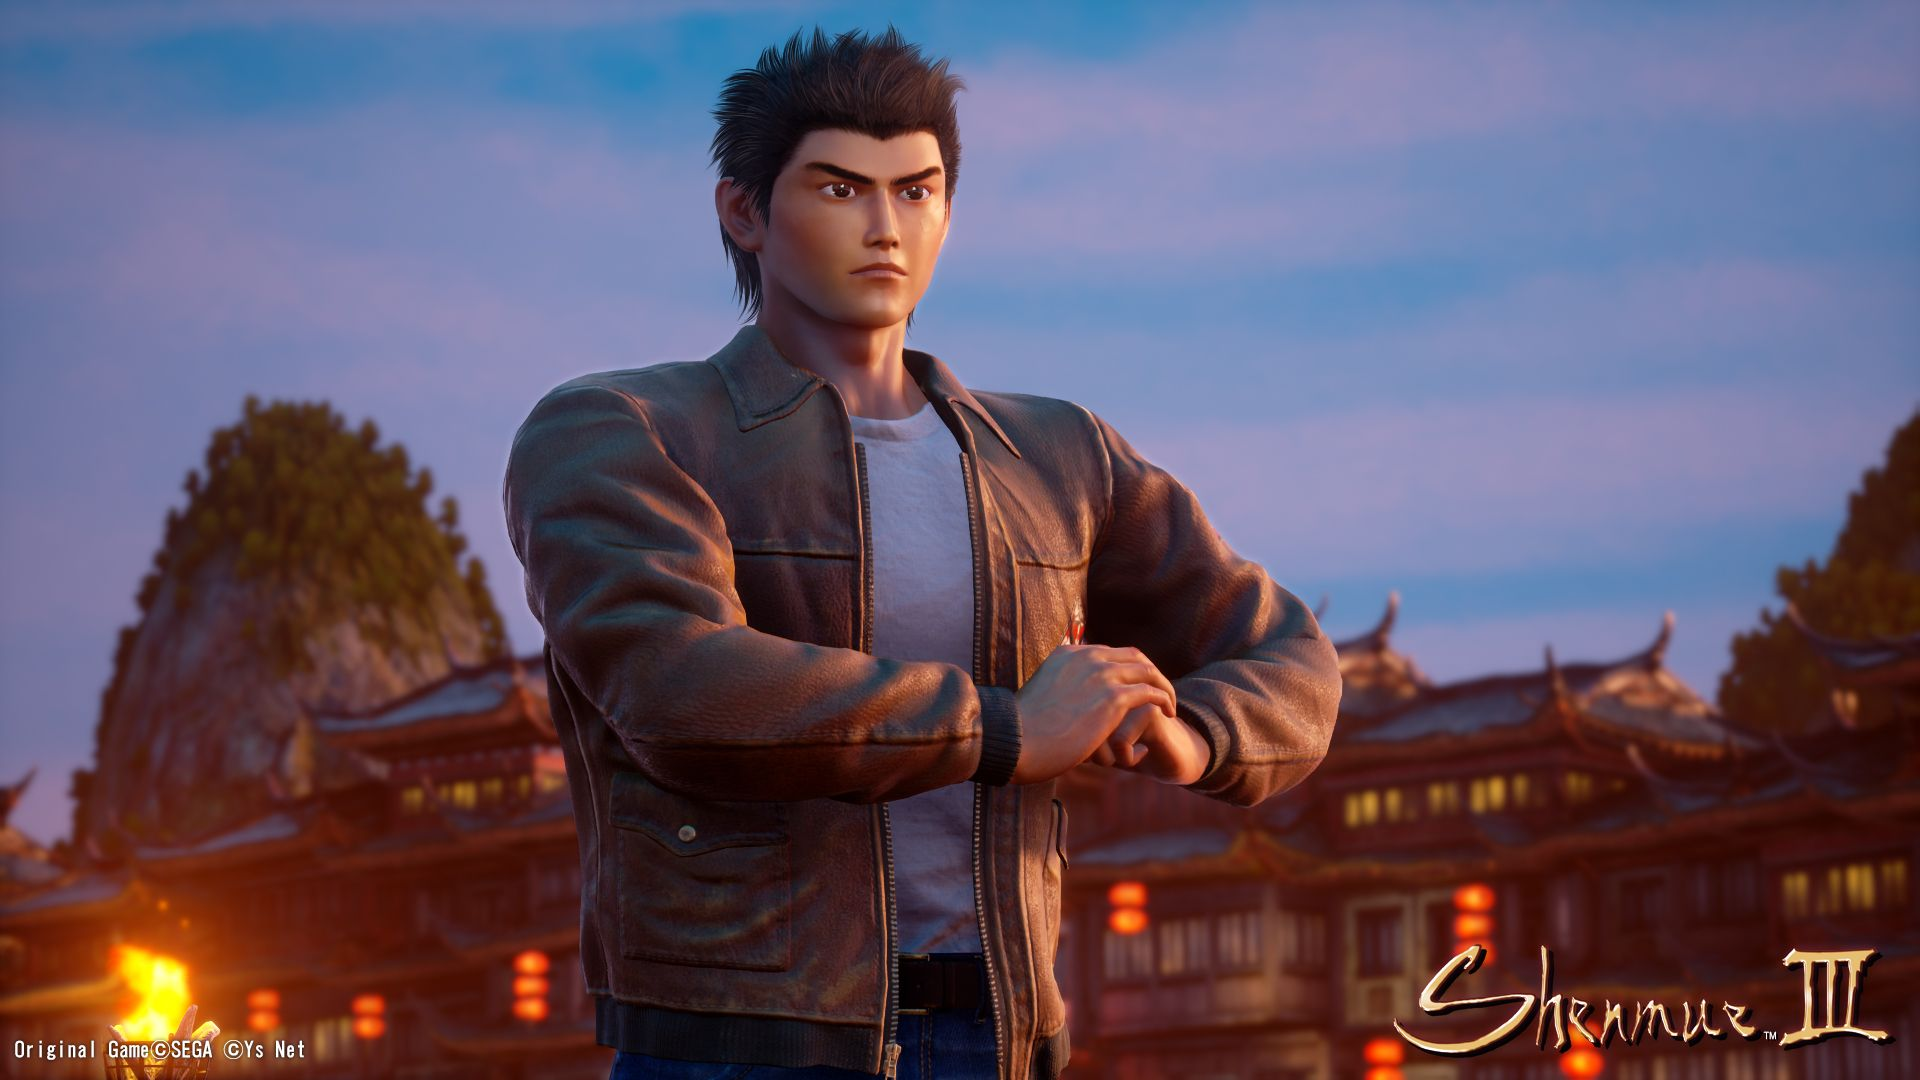 Top Free Shenmue Backgrounds